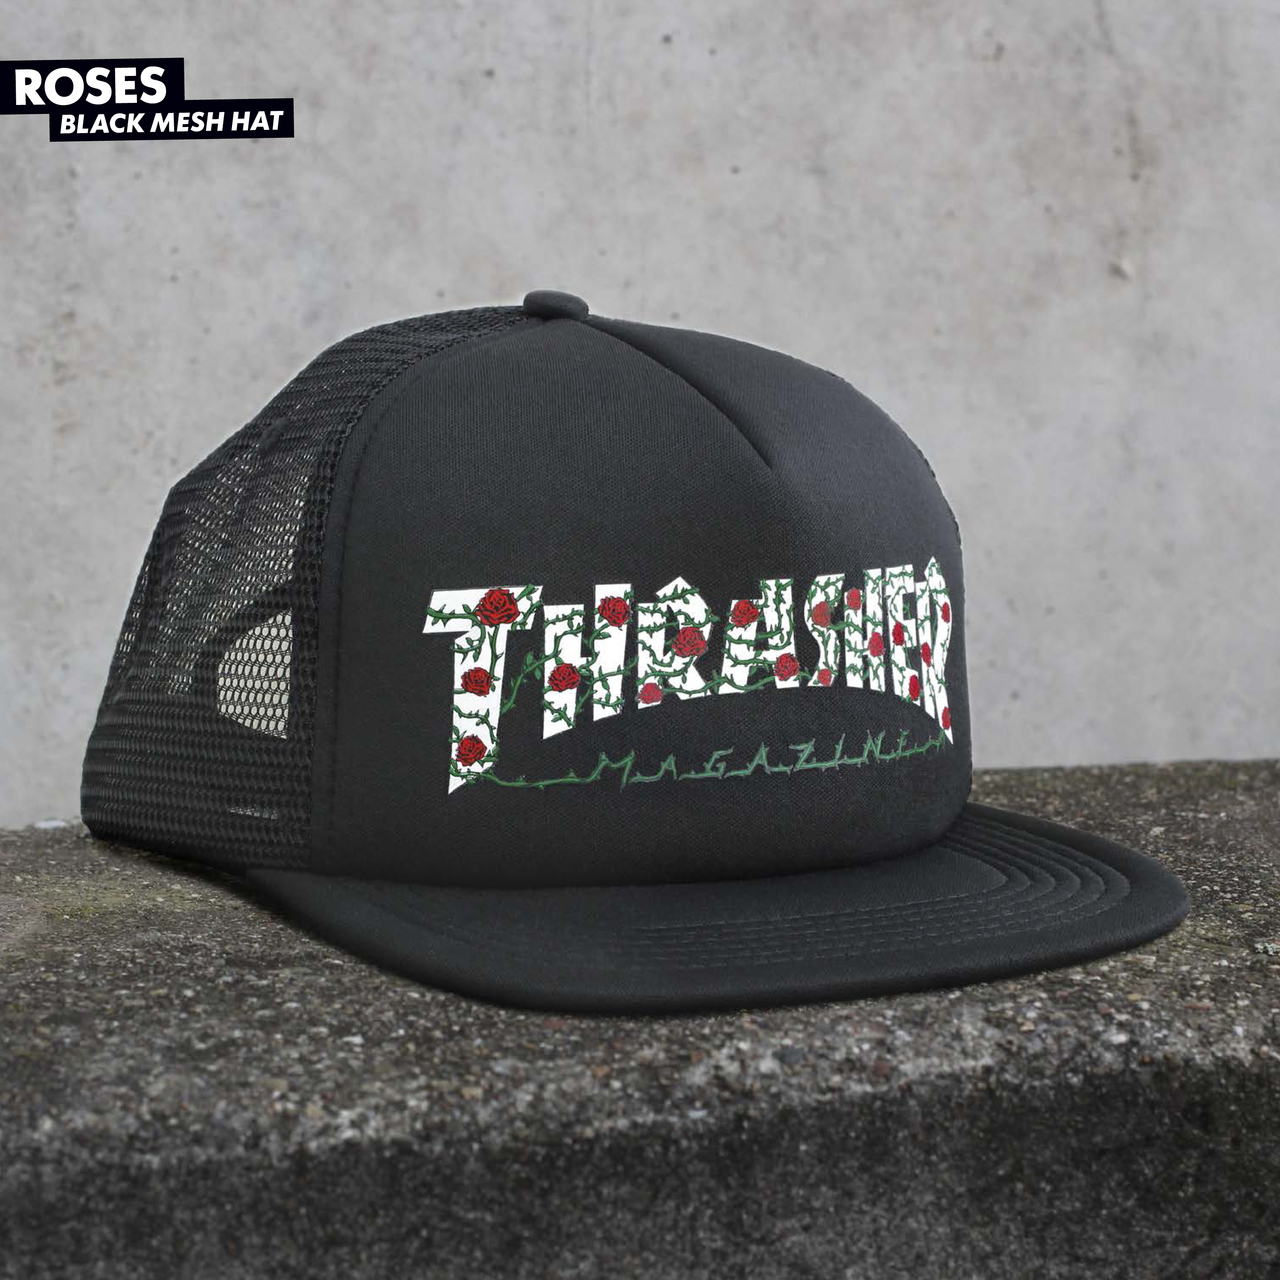 4cbf929184d1 Thrasher Roses Mesh Hat Black - stamp cm : Inspired by LnwShop.com